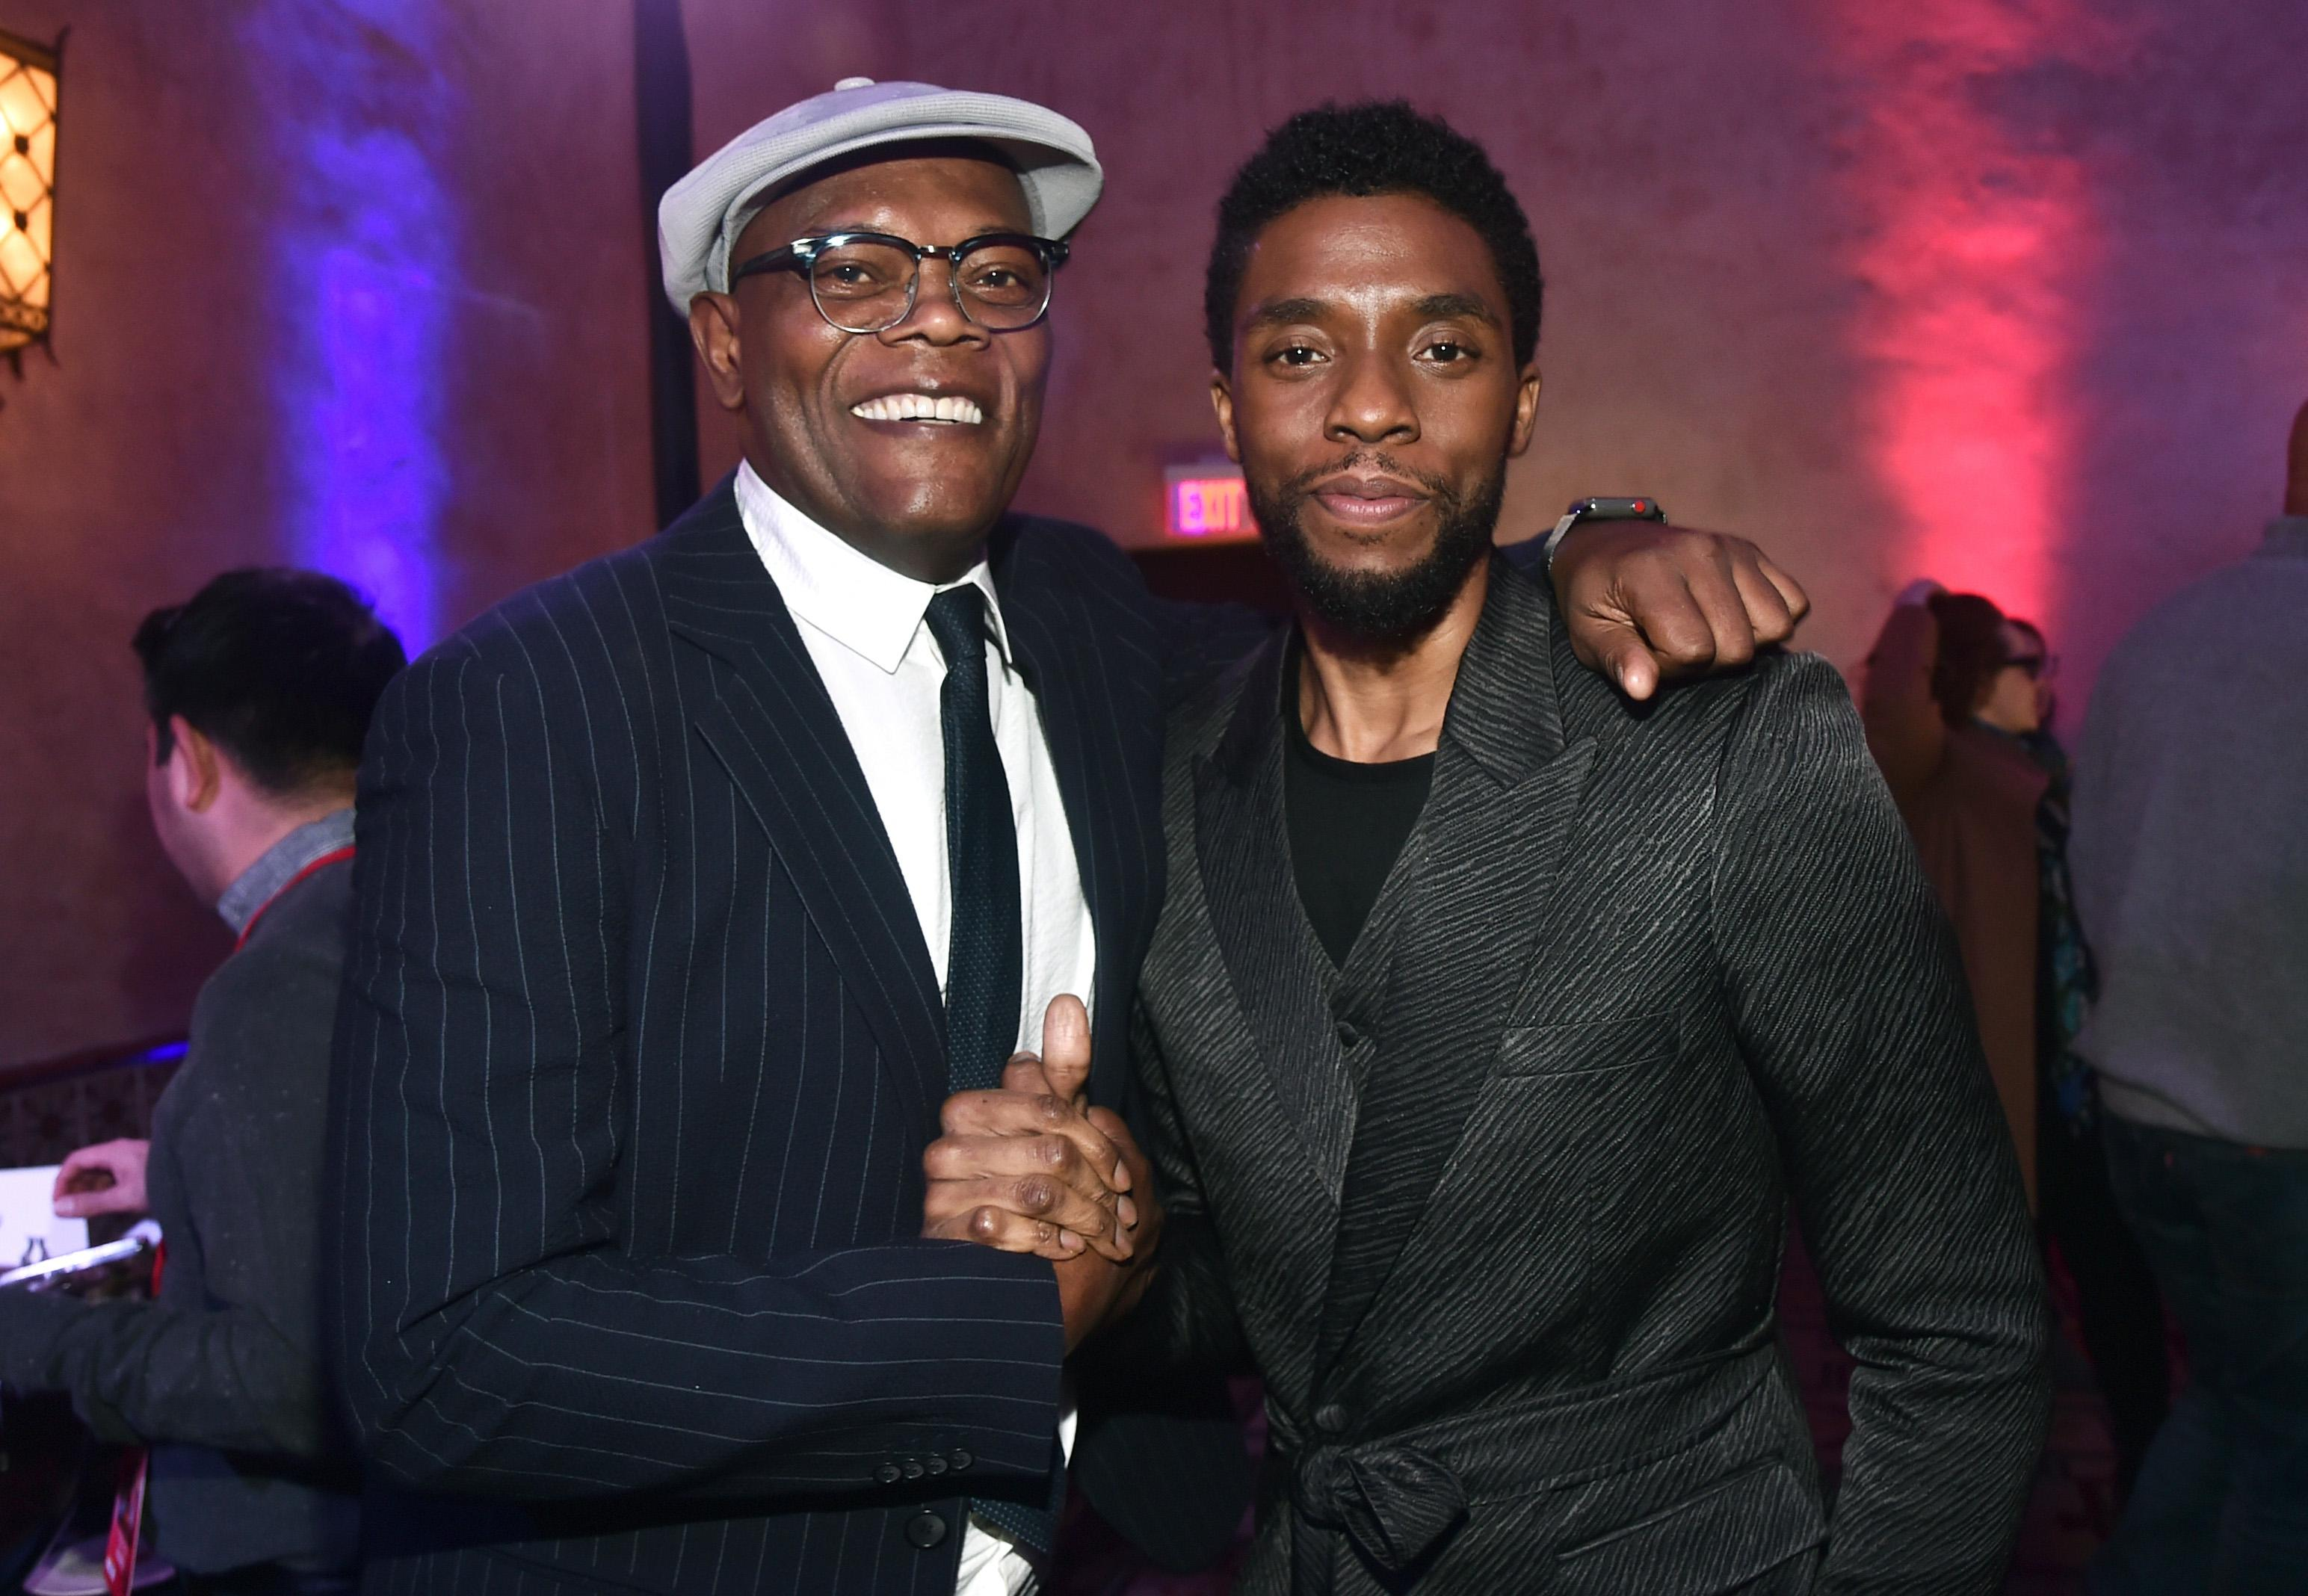 Samuel L. Jackson says he had project with Chadwick Boseman that never got off the ground: 'We had planned it for a while' - Yahoo Entertainment